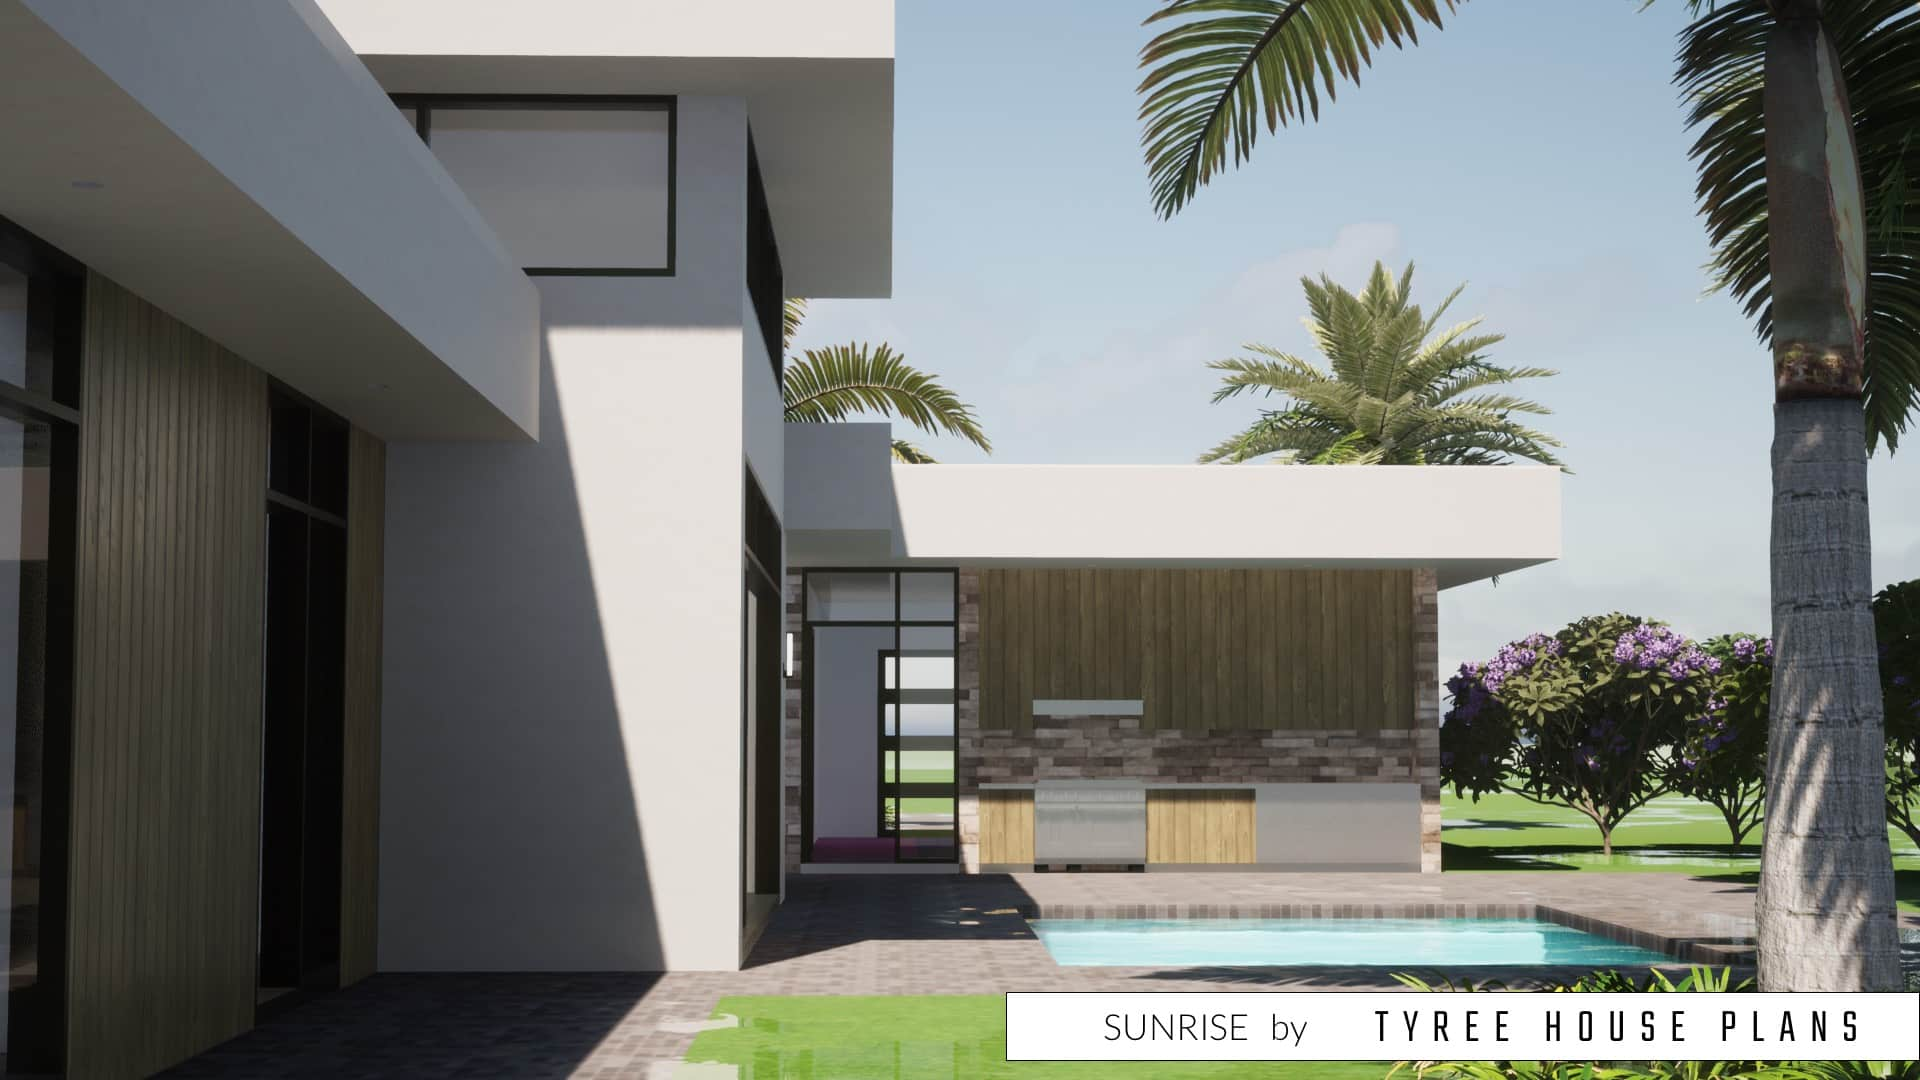 Sunrise House Plan by Tyree House Plans